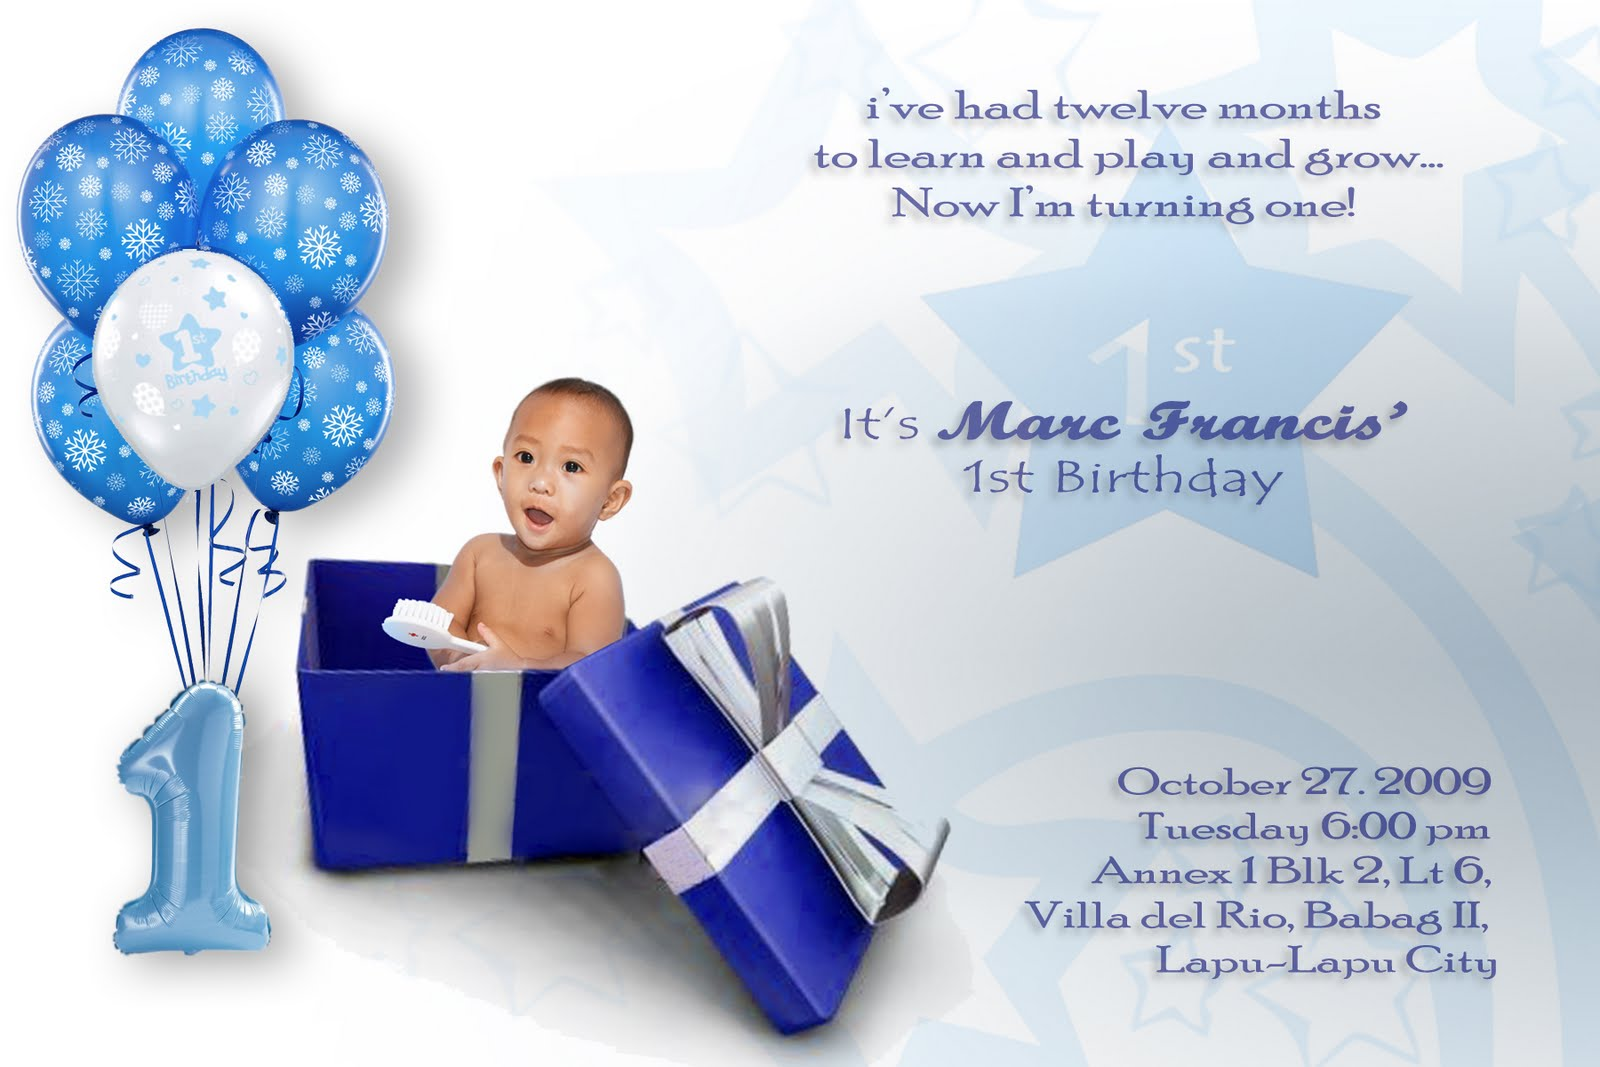 Baby Boy Gifts For 1st Birthday : Baby boy first birthday invitations drevio